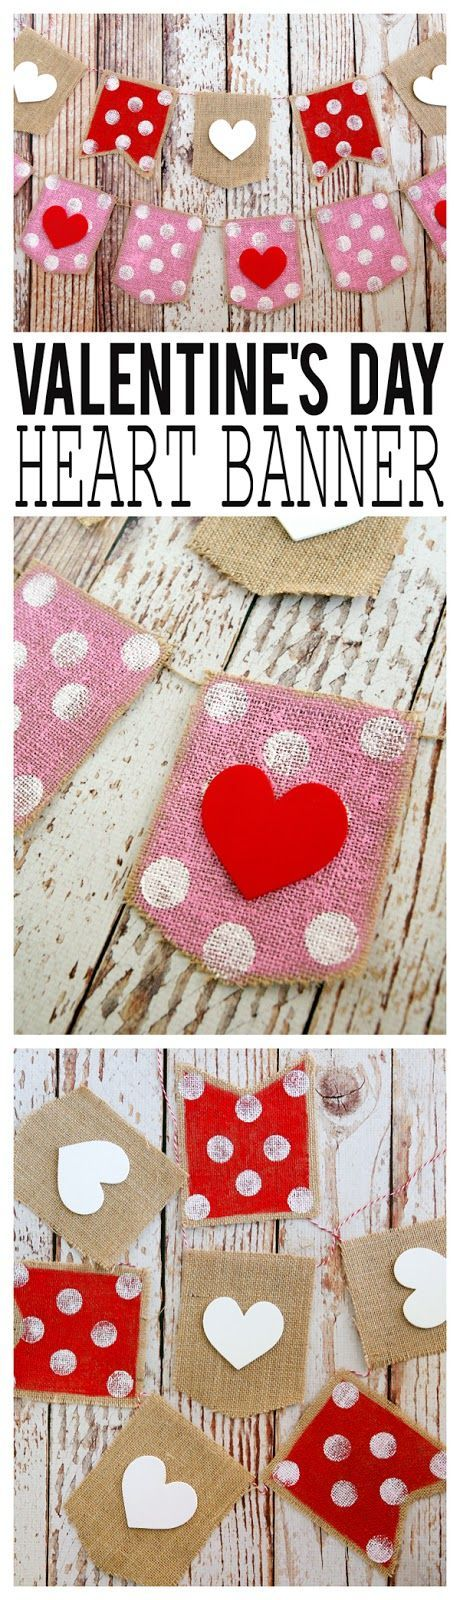 Valentine's Day heart banner. SO cute!! Absolutely love this idea!